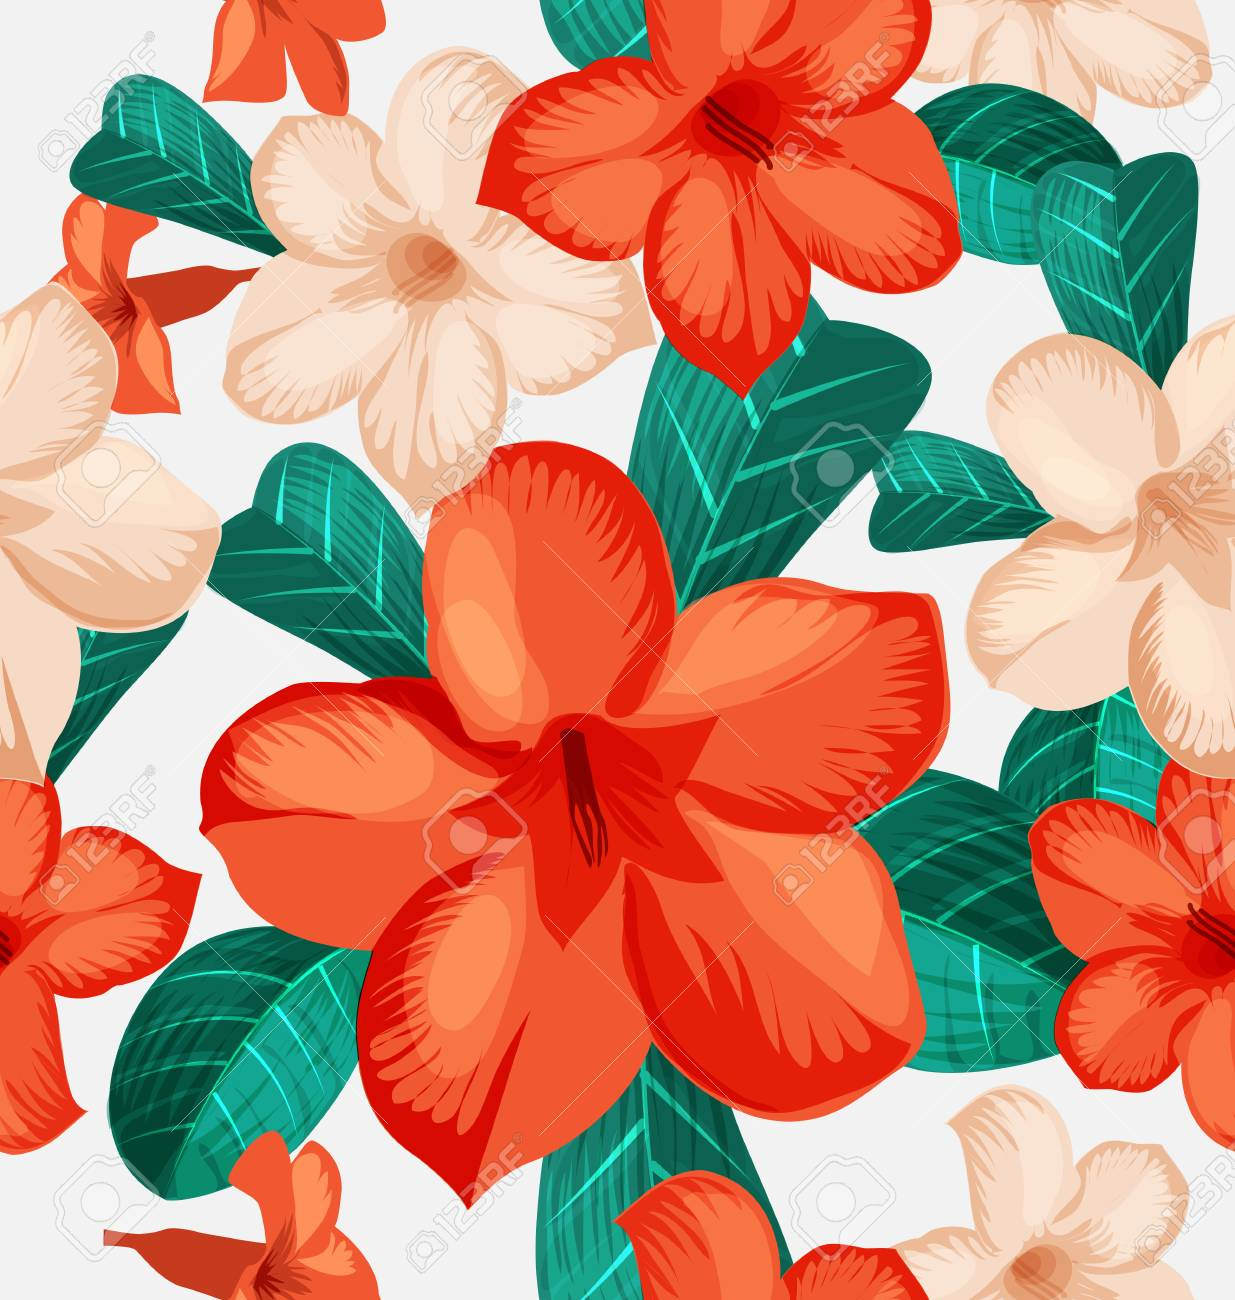 Seamless Floral Pattern With Tropical Flowers Foliage Seamless